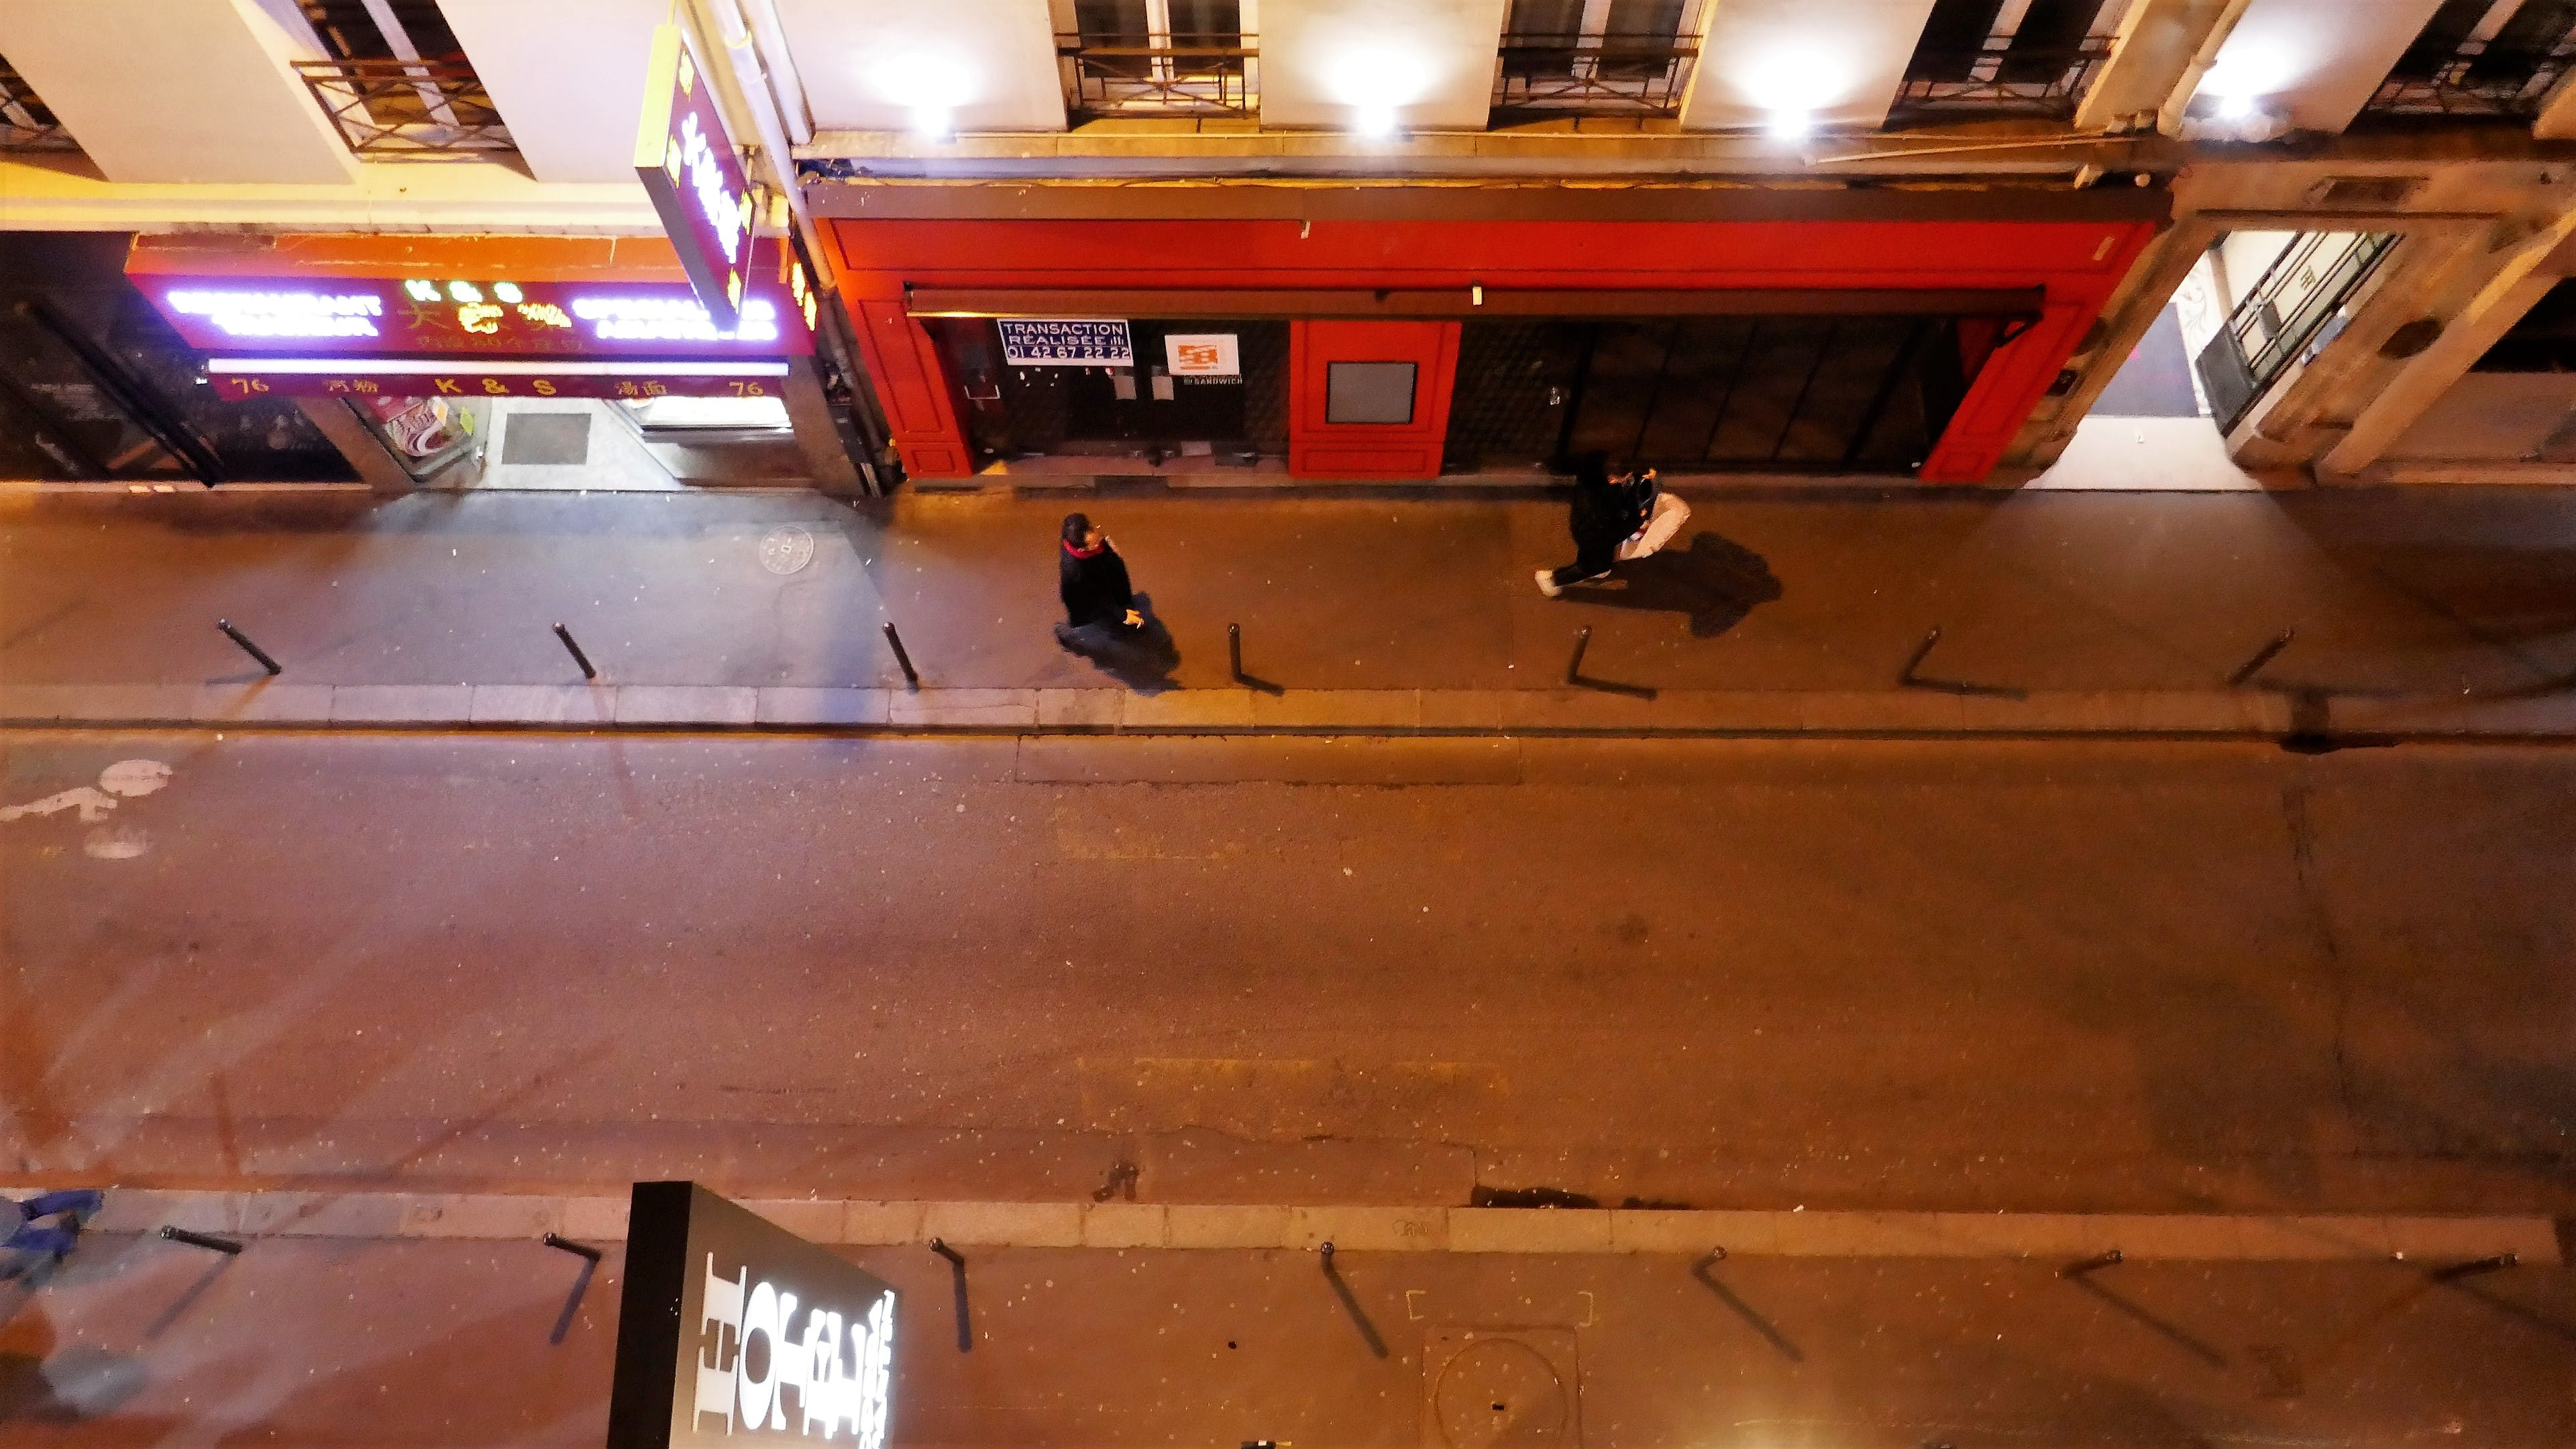 Free stock photo of Street night view from another perspective